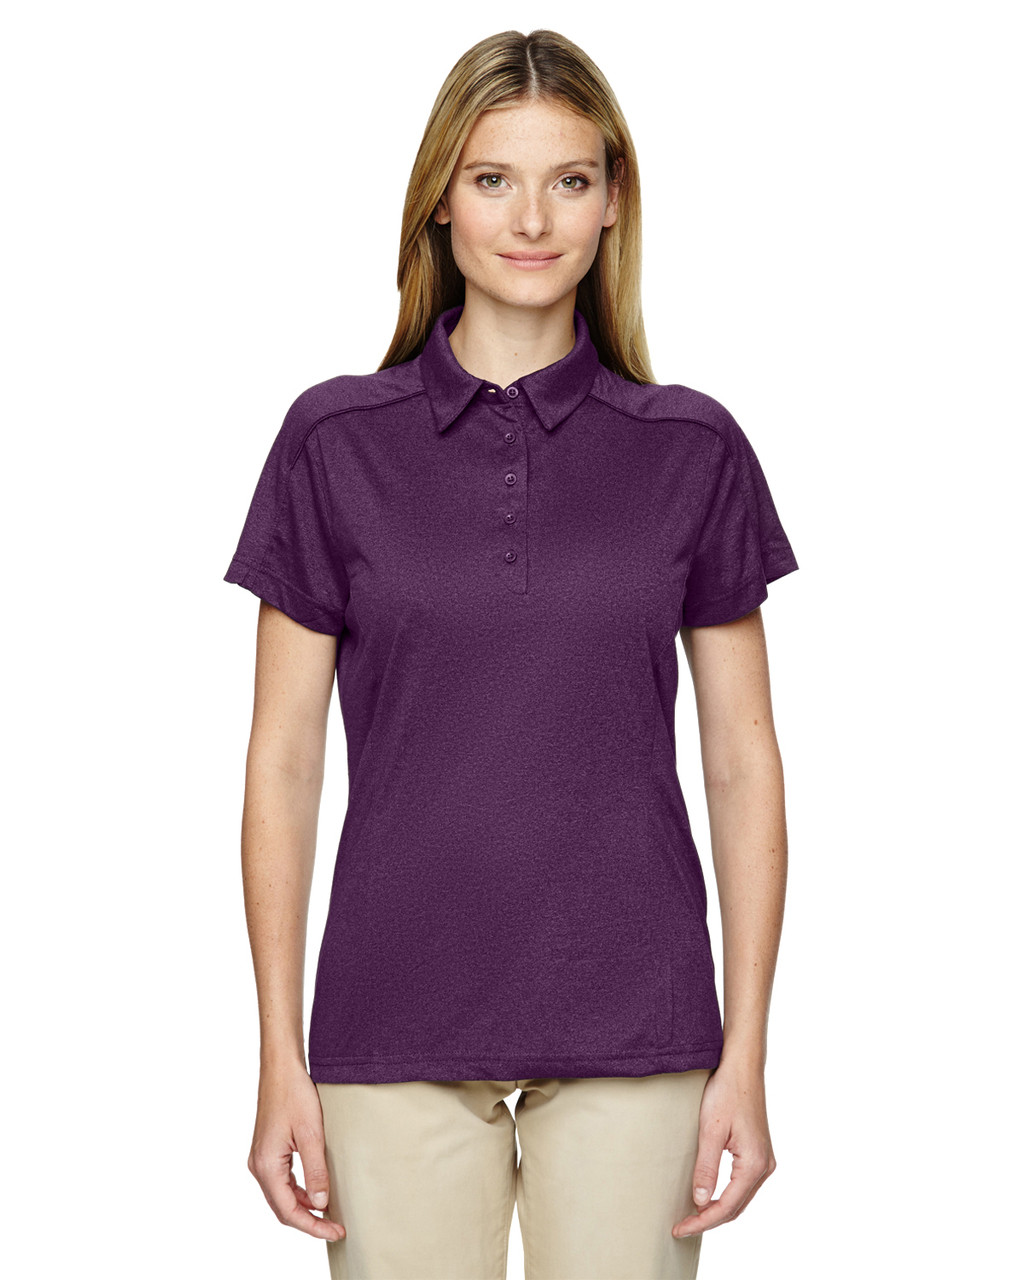 Mulbry Purpl 75117 Ash City - Extreme Eperformance Mélange Polo Shirt